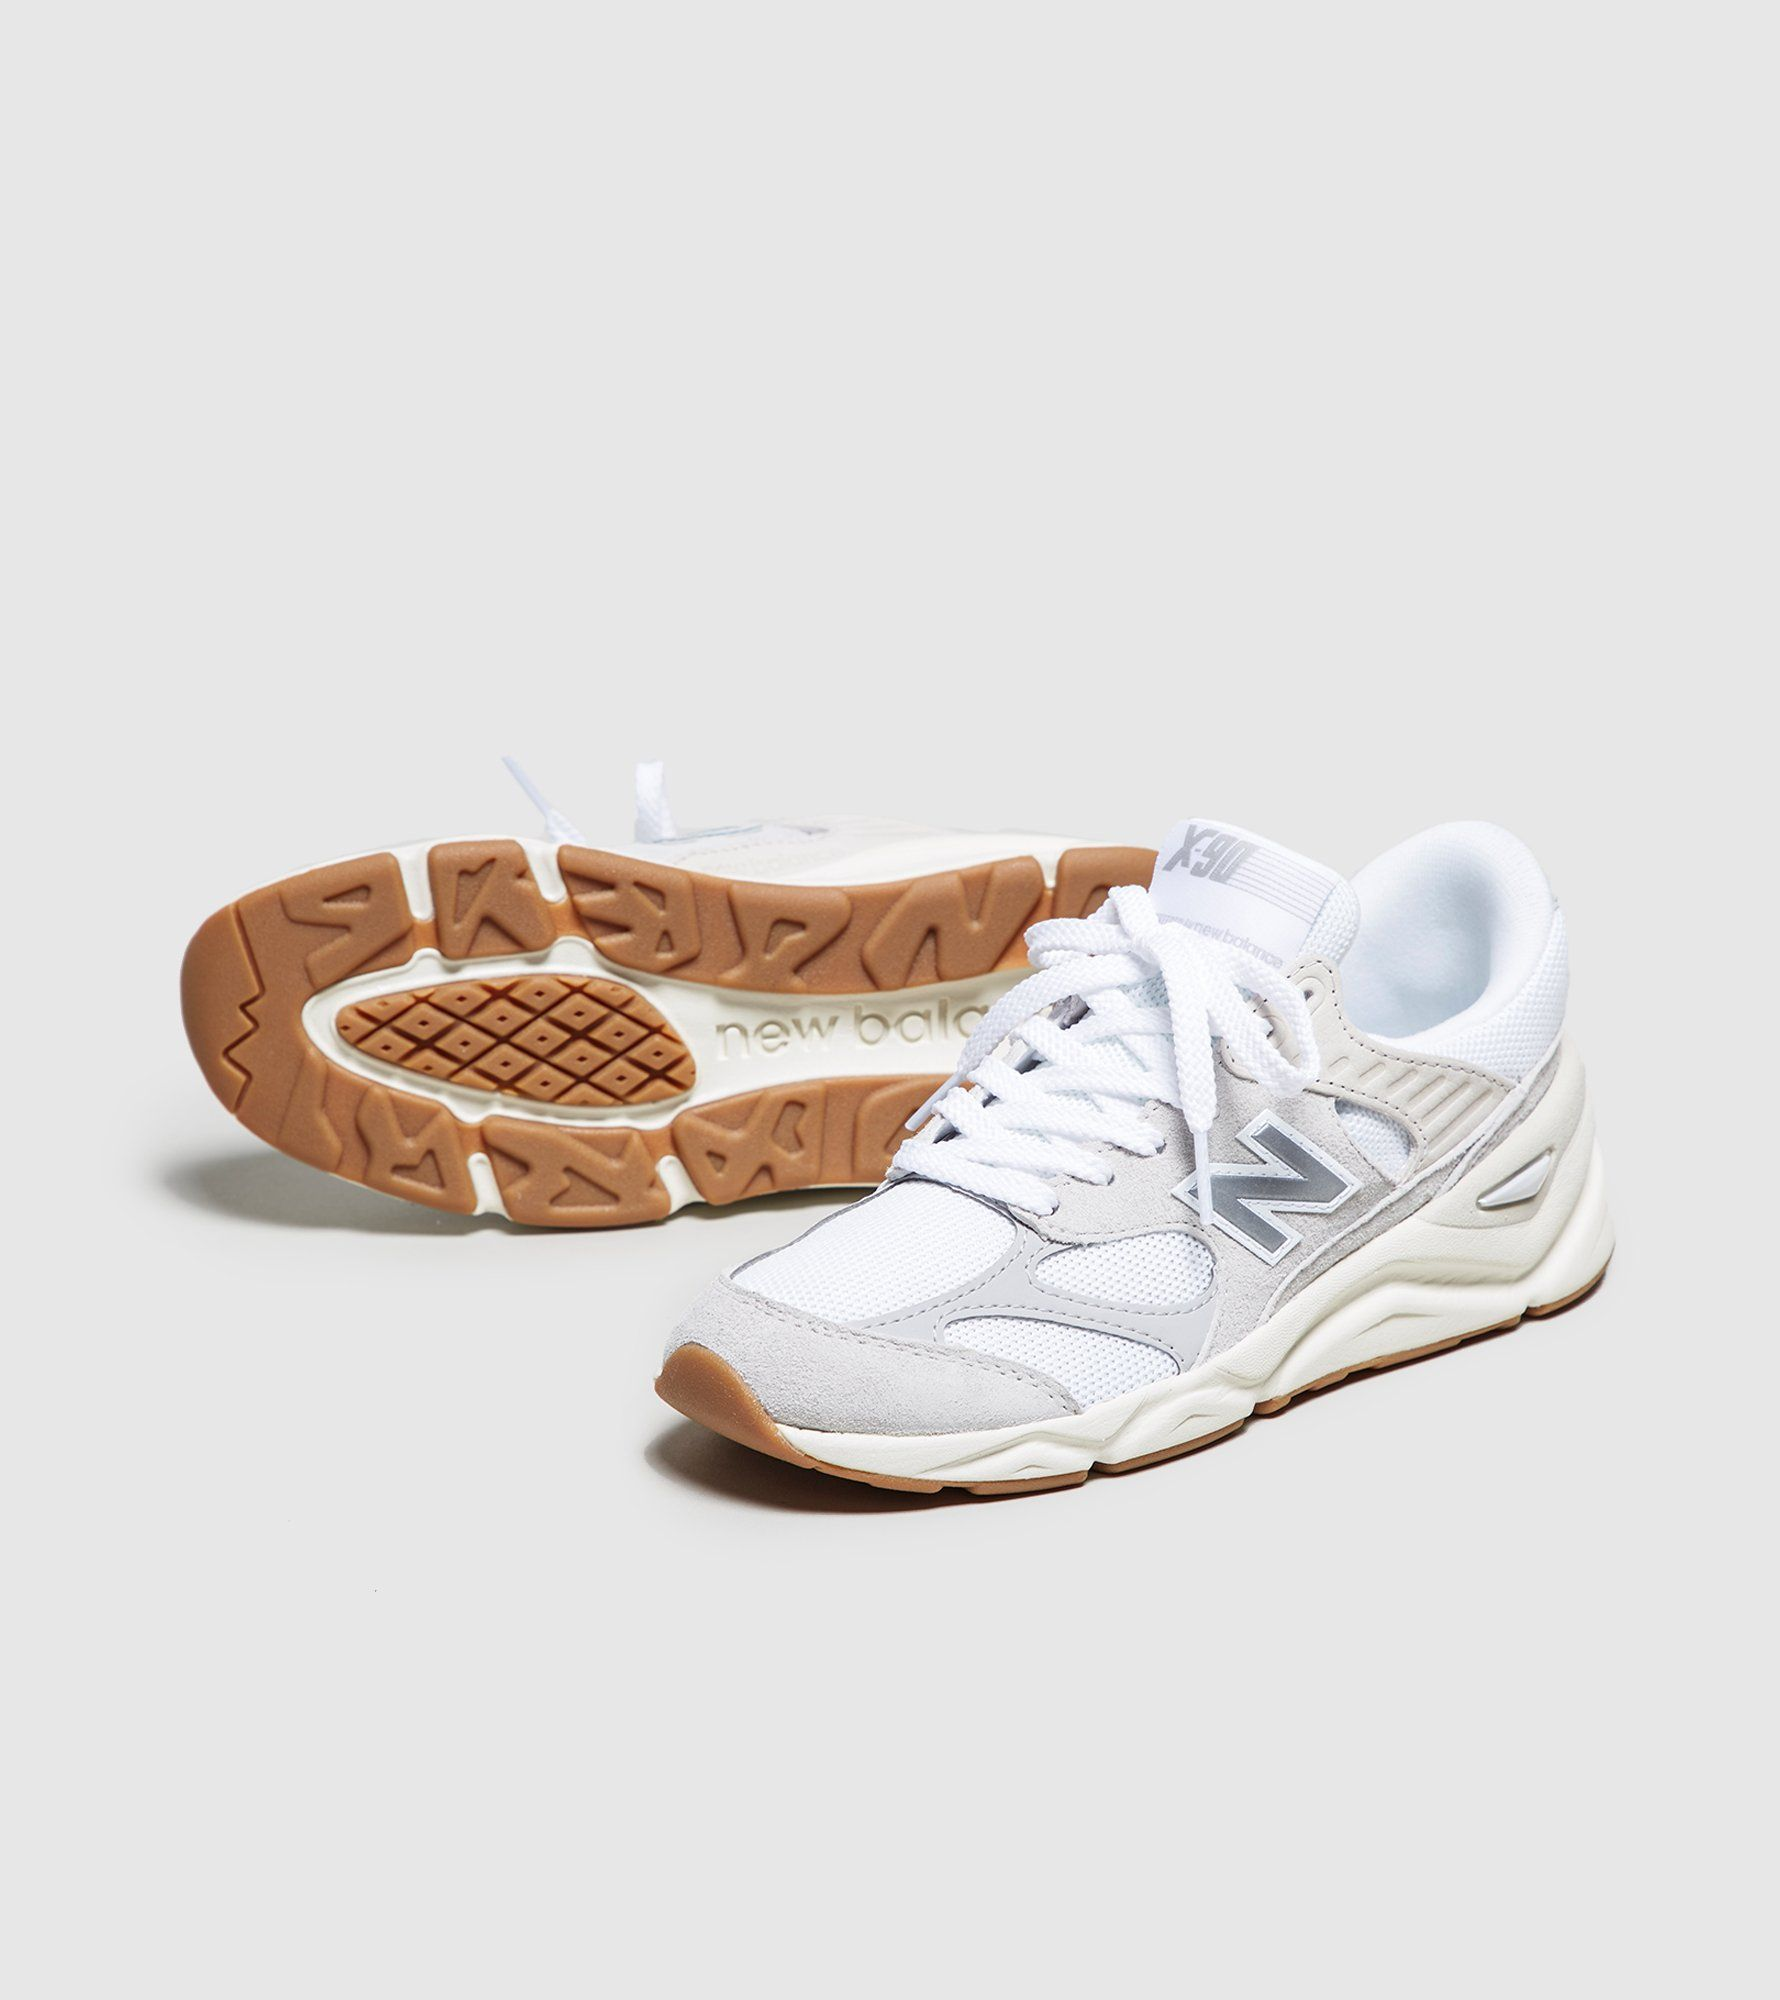 New Balance X-90 RV1 Women's